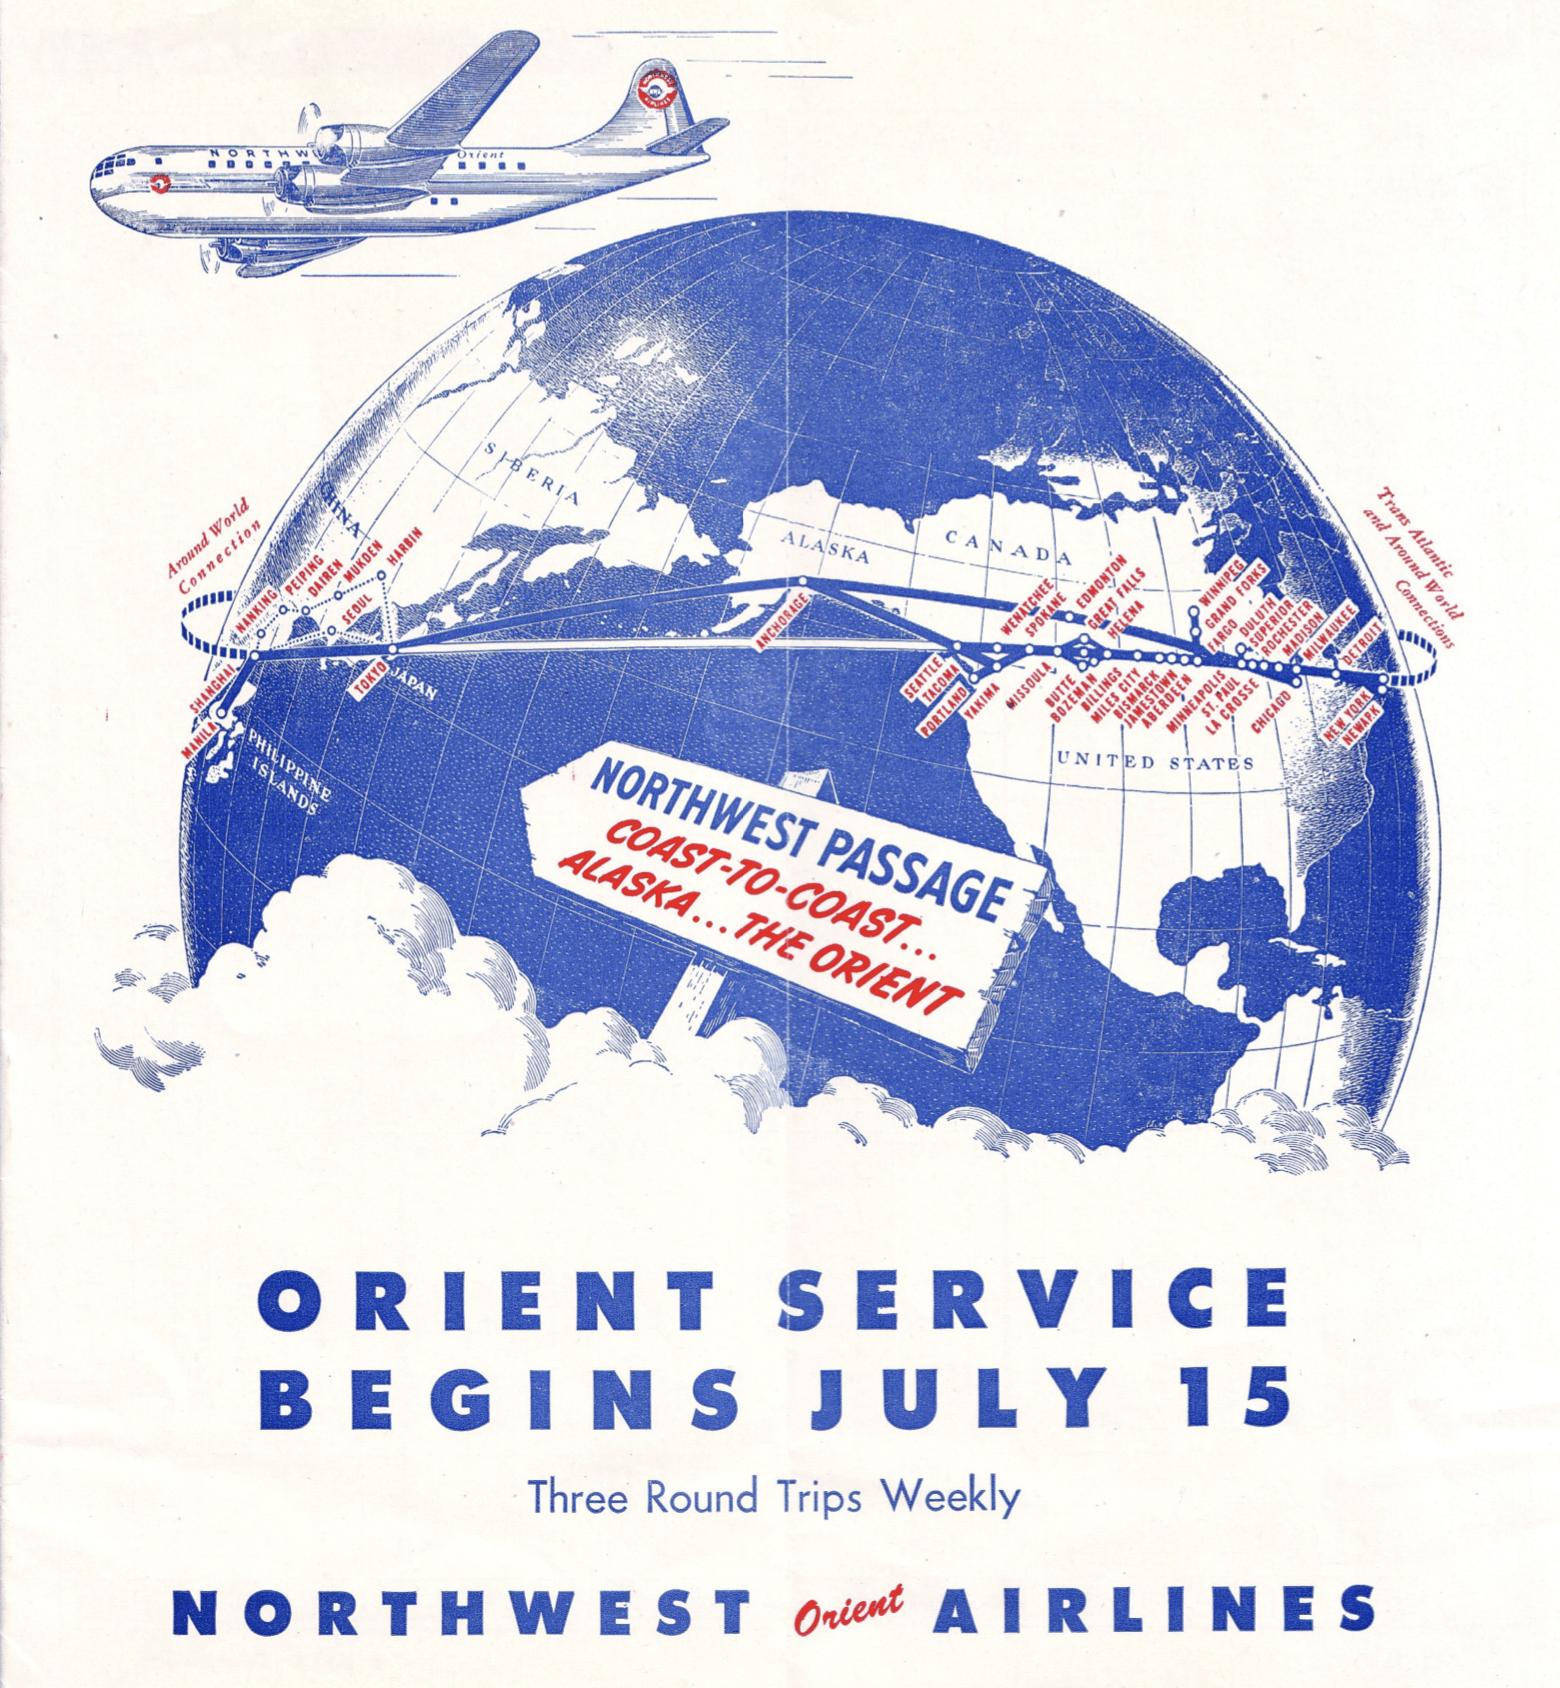 The Northwest Orient Airlines route map showing new service to Asia in July 1947. (Image courtesy of